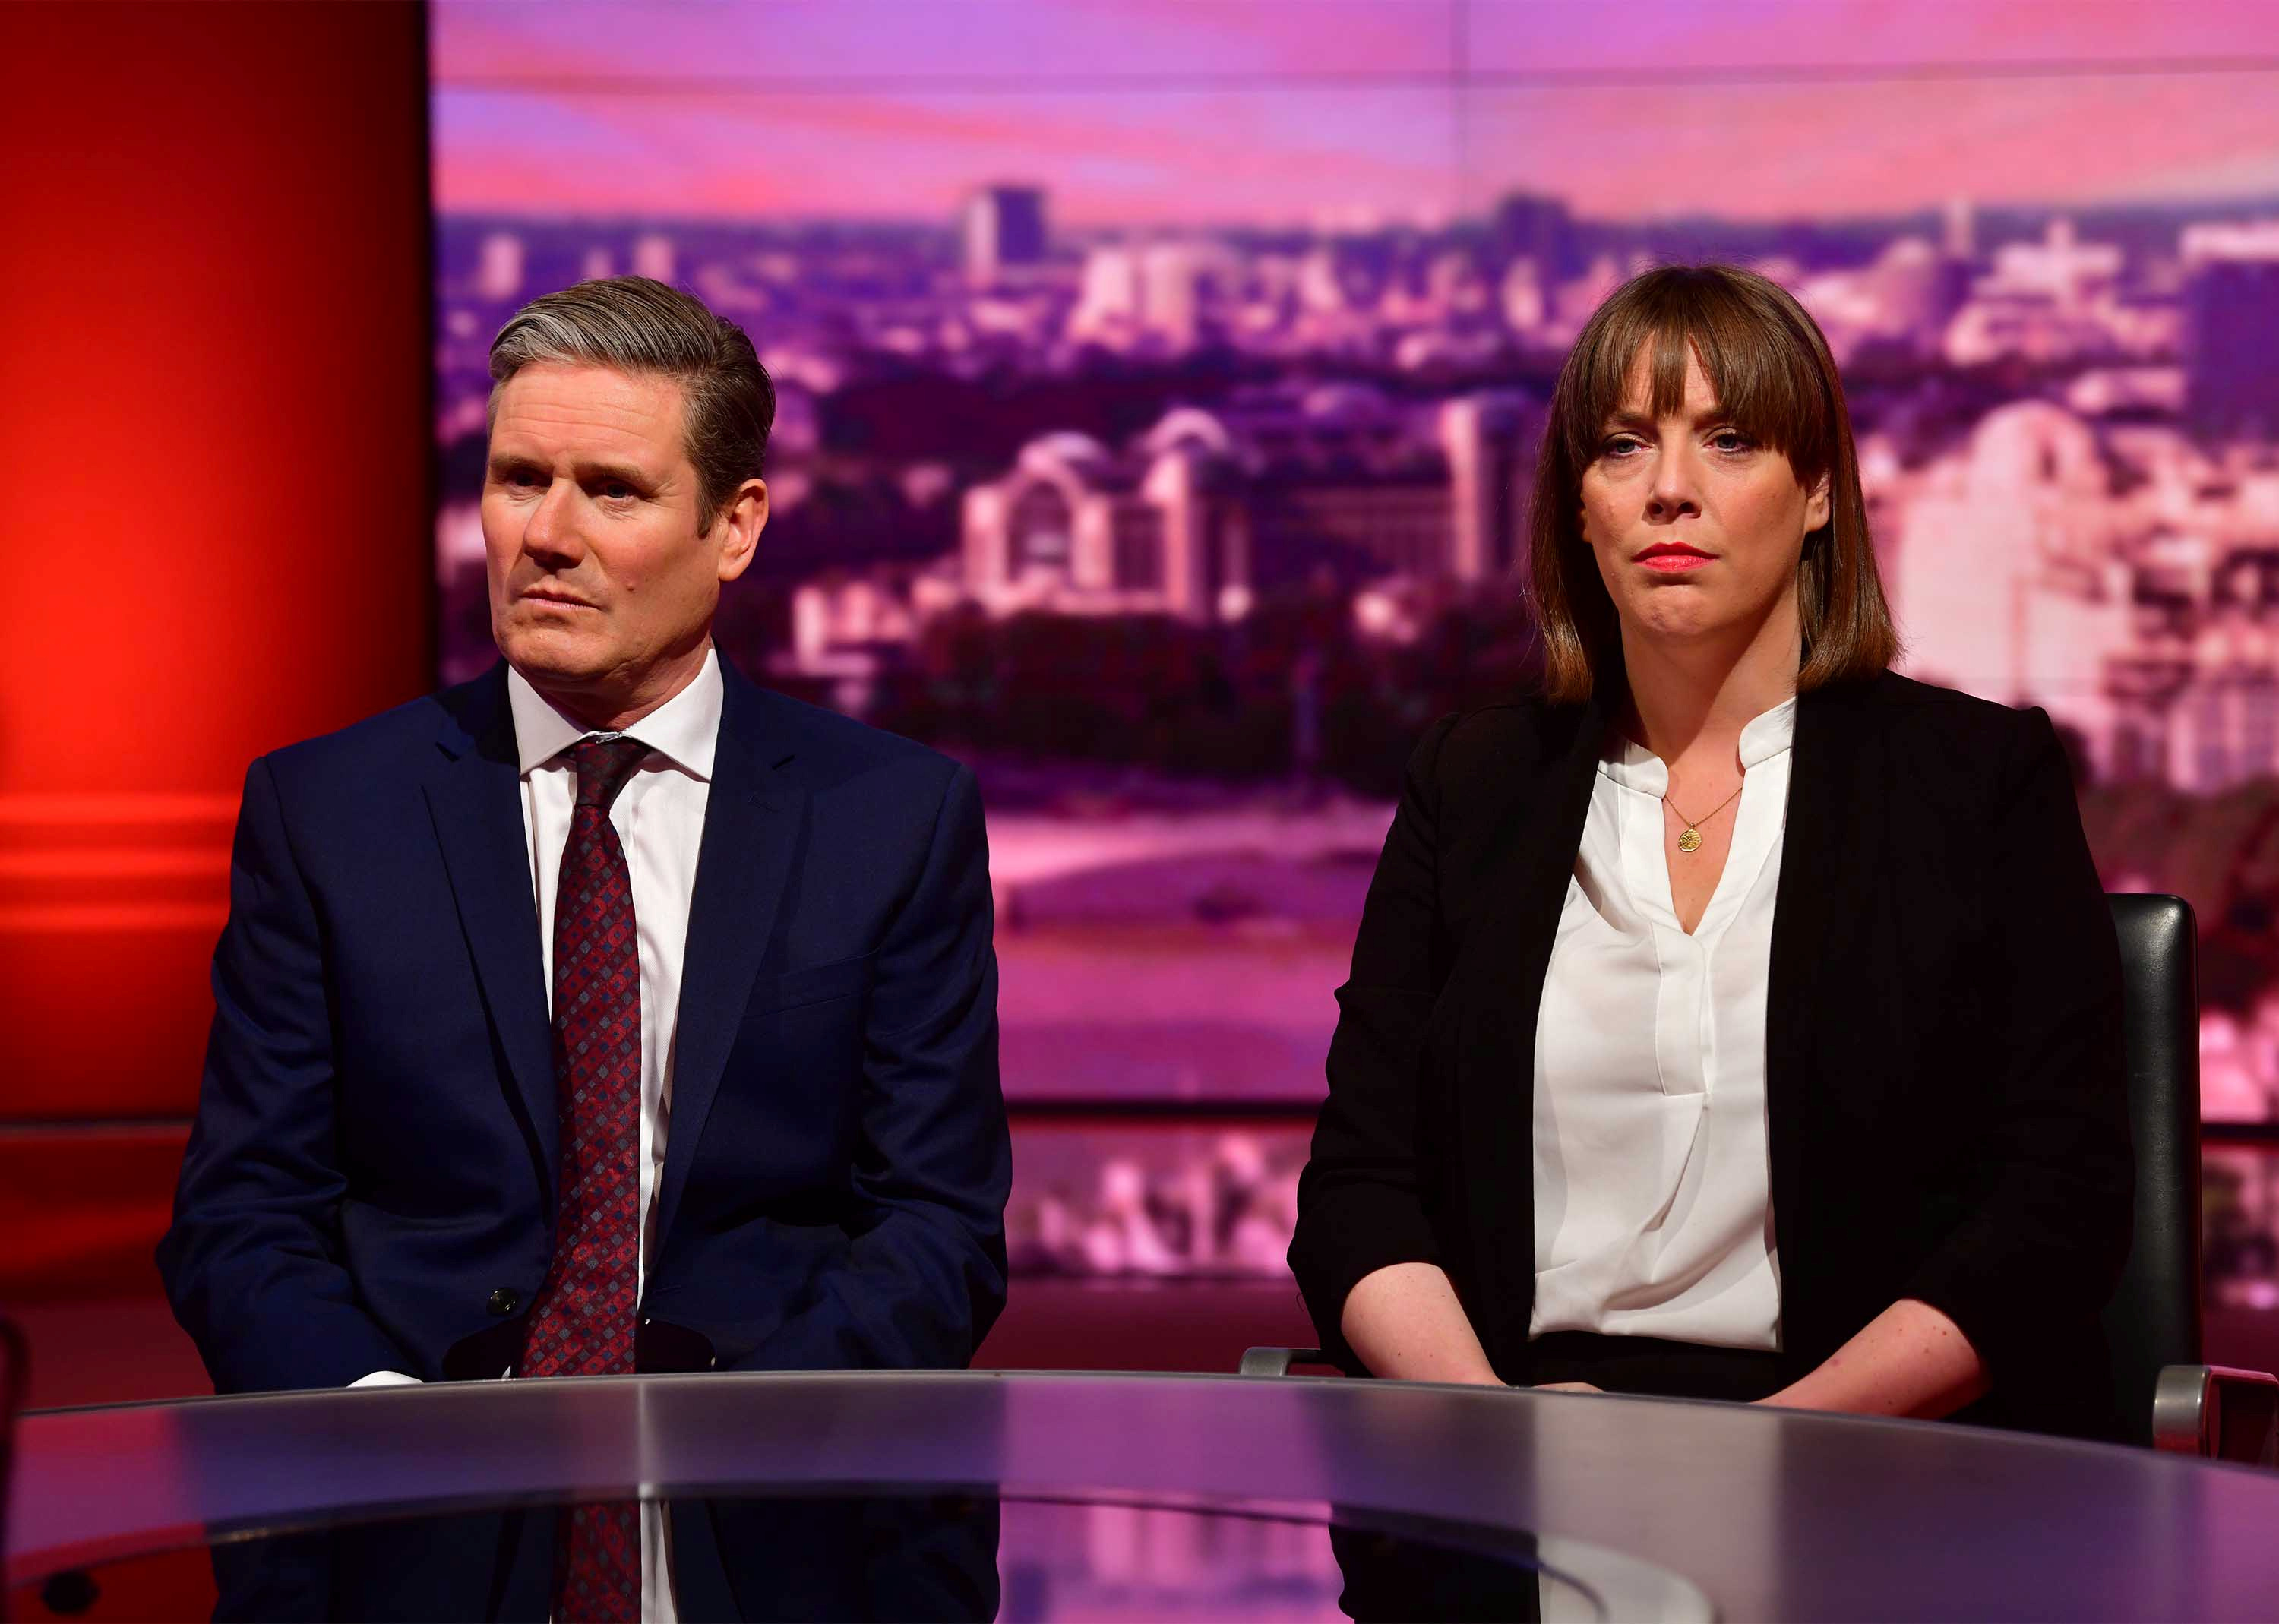 Britain's Labour MP Jess Phillips and opposition Labour Party Shadow Brexit Secretary Keir Starmer appear on BBC TV's The Andrew Marr Show in London, Britain January 5, 2020. Jeff Overs/BBC/Handout via REUTERS ATTENTION EDITORS - THIS IMAGE HAS BEEN SUPPLIED BY A THIRD PARTY. NO RESALES. NO ARCHIVES. NOT FOR USE MORE THAN 21 DAYS AFTER ISSUE.